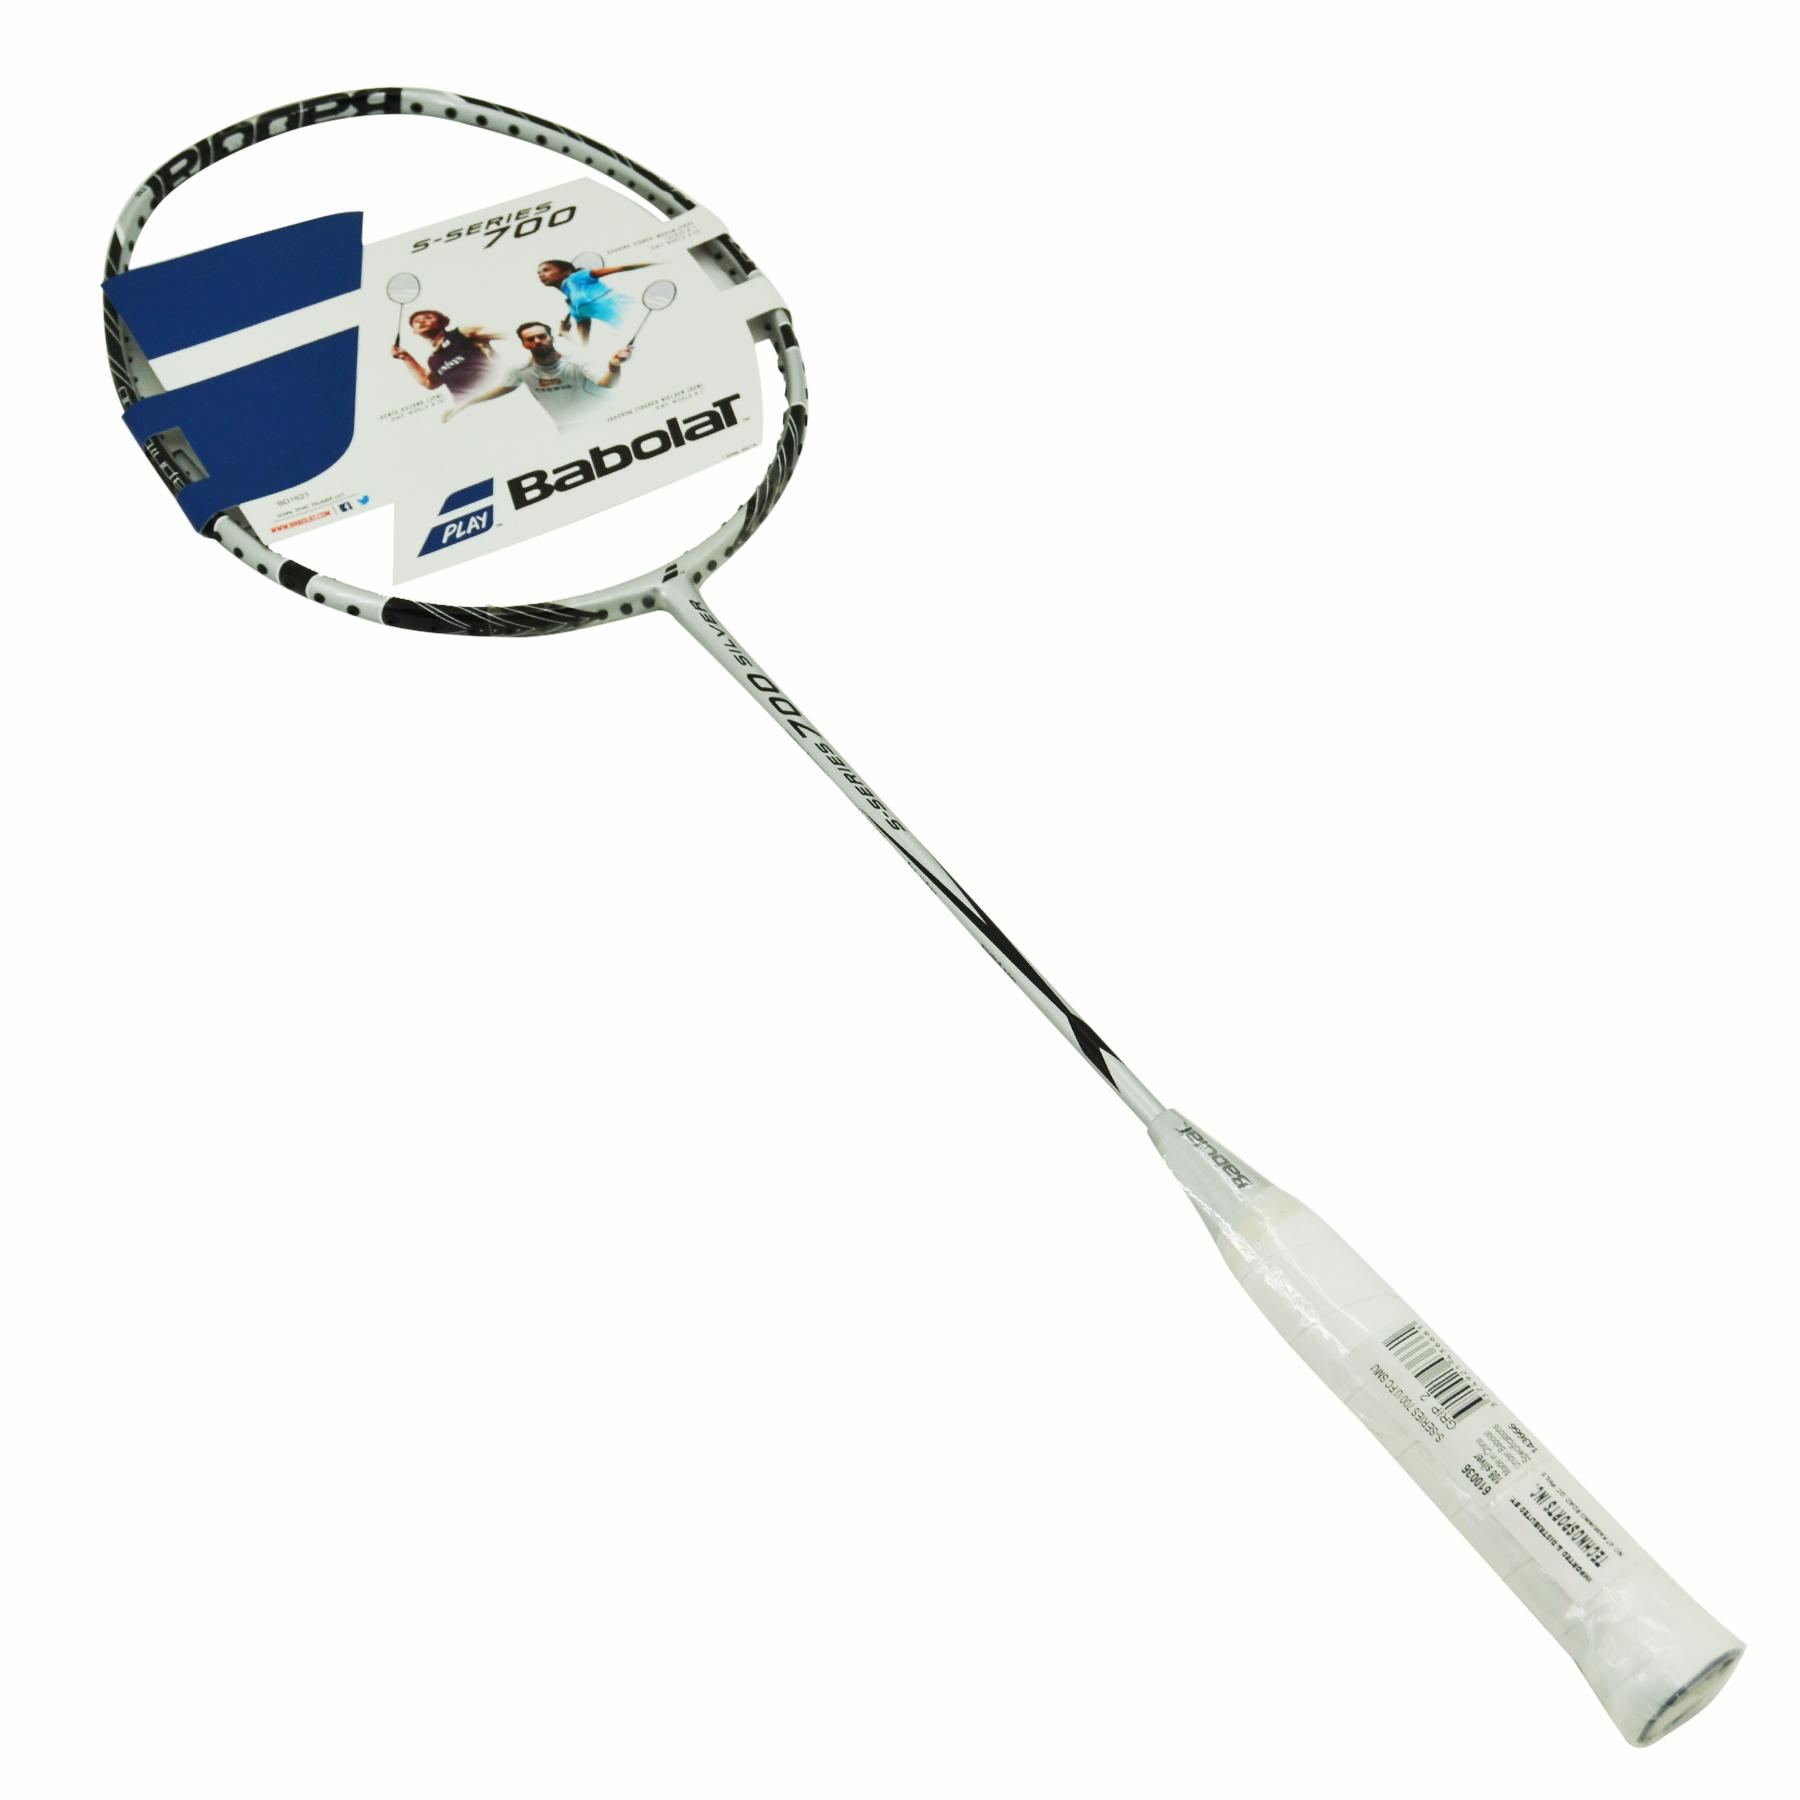 Babolat Badminton Philippines - Babolat Badminton Products for sale ... 2fb004e7683b3